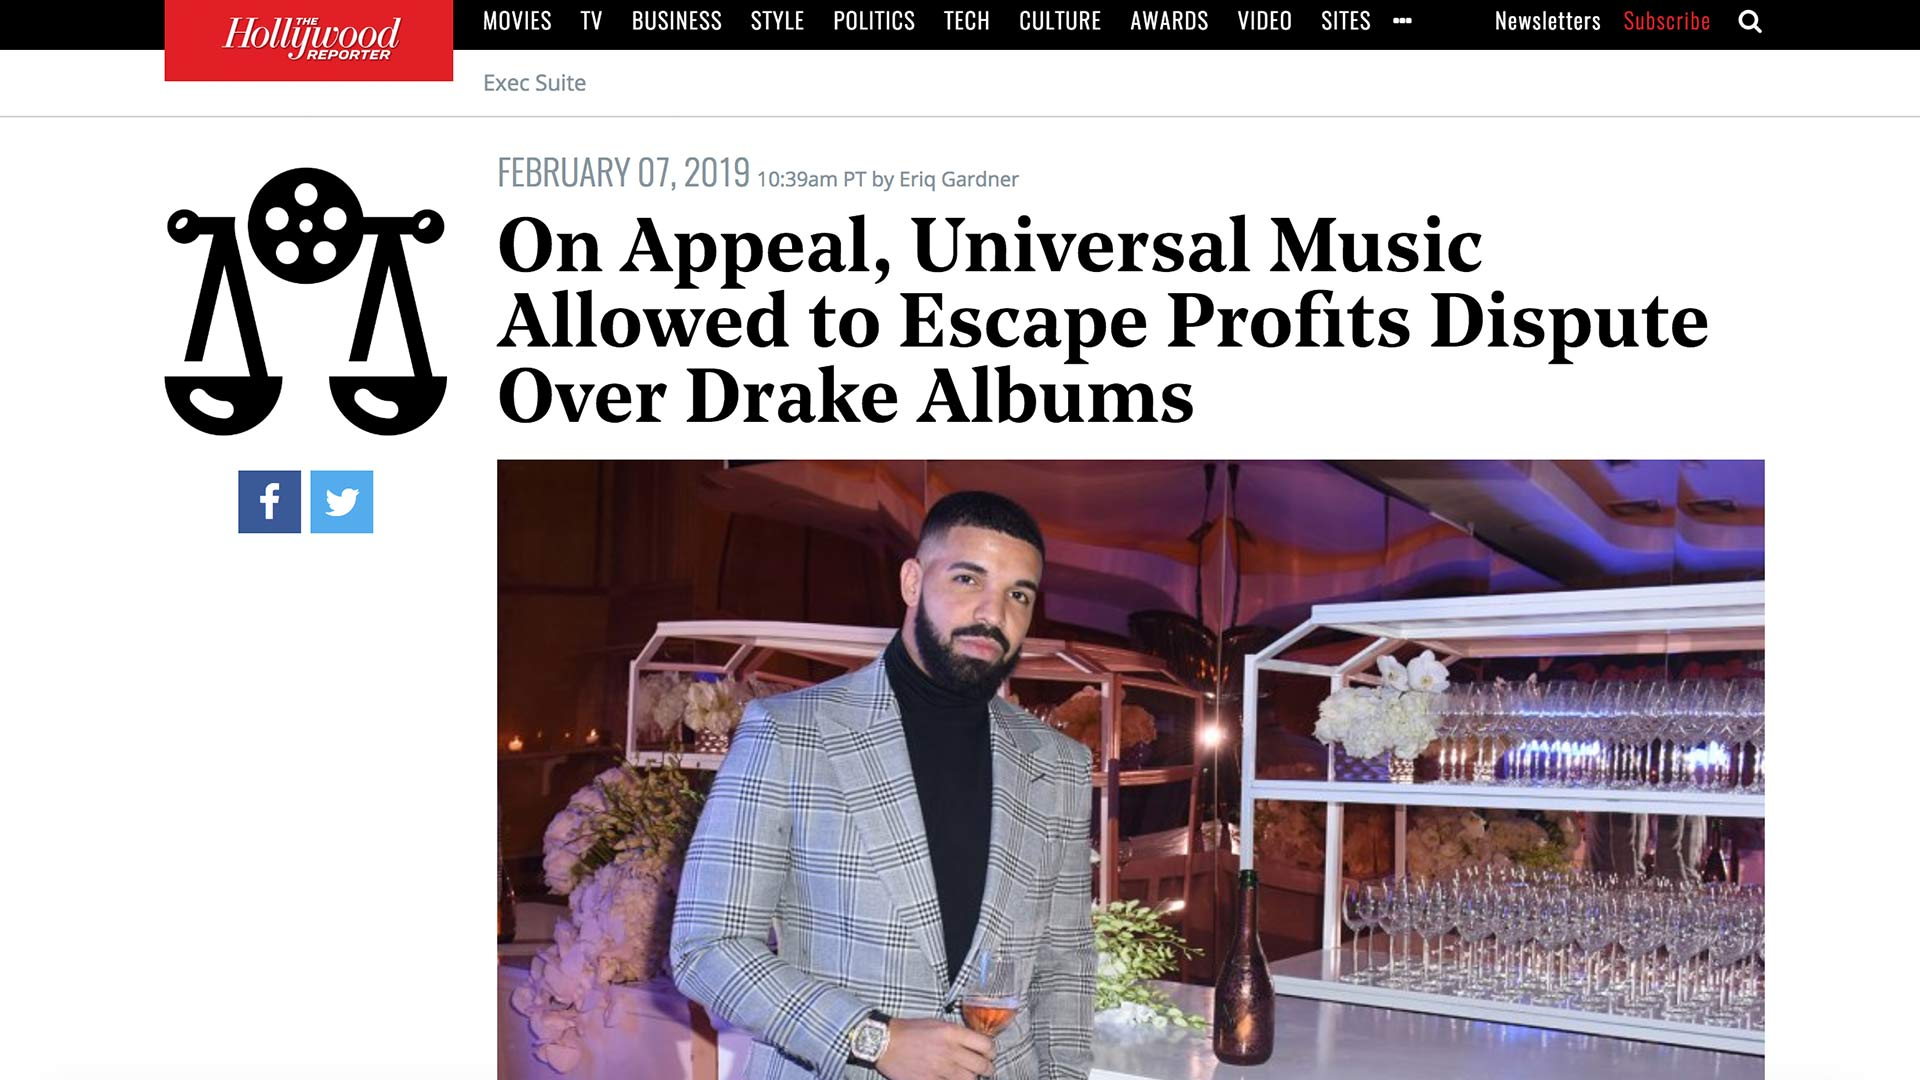 Fairness Rocks News On Appeal, Universal Music Allowed to Escape Profits Dispute Over Drake Albums